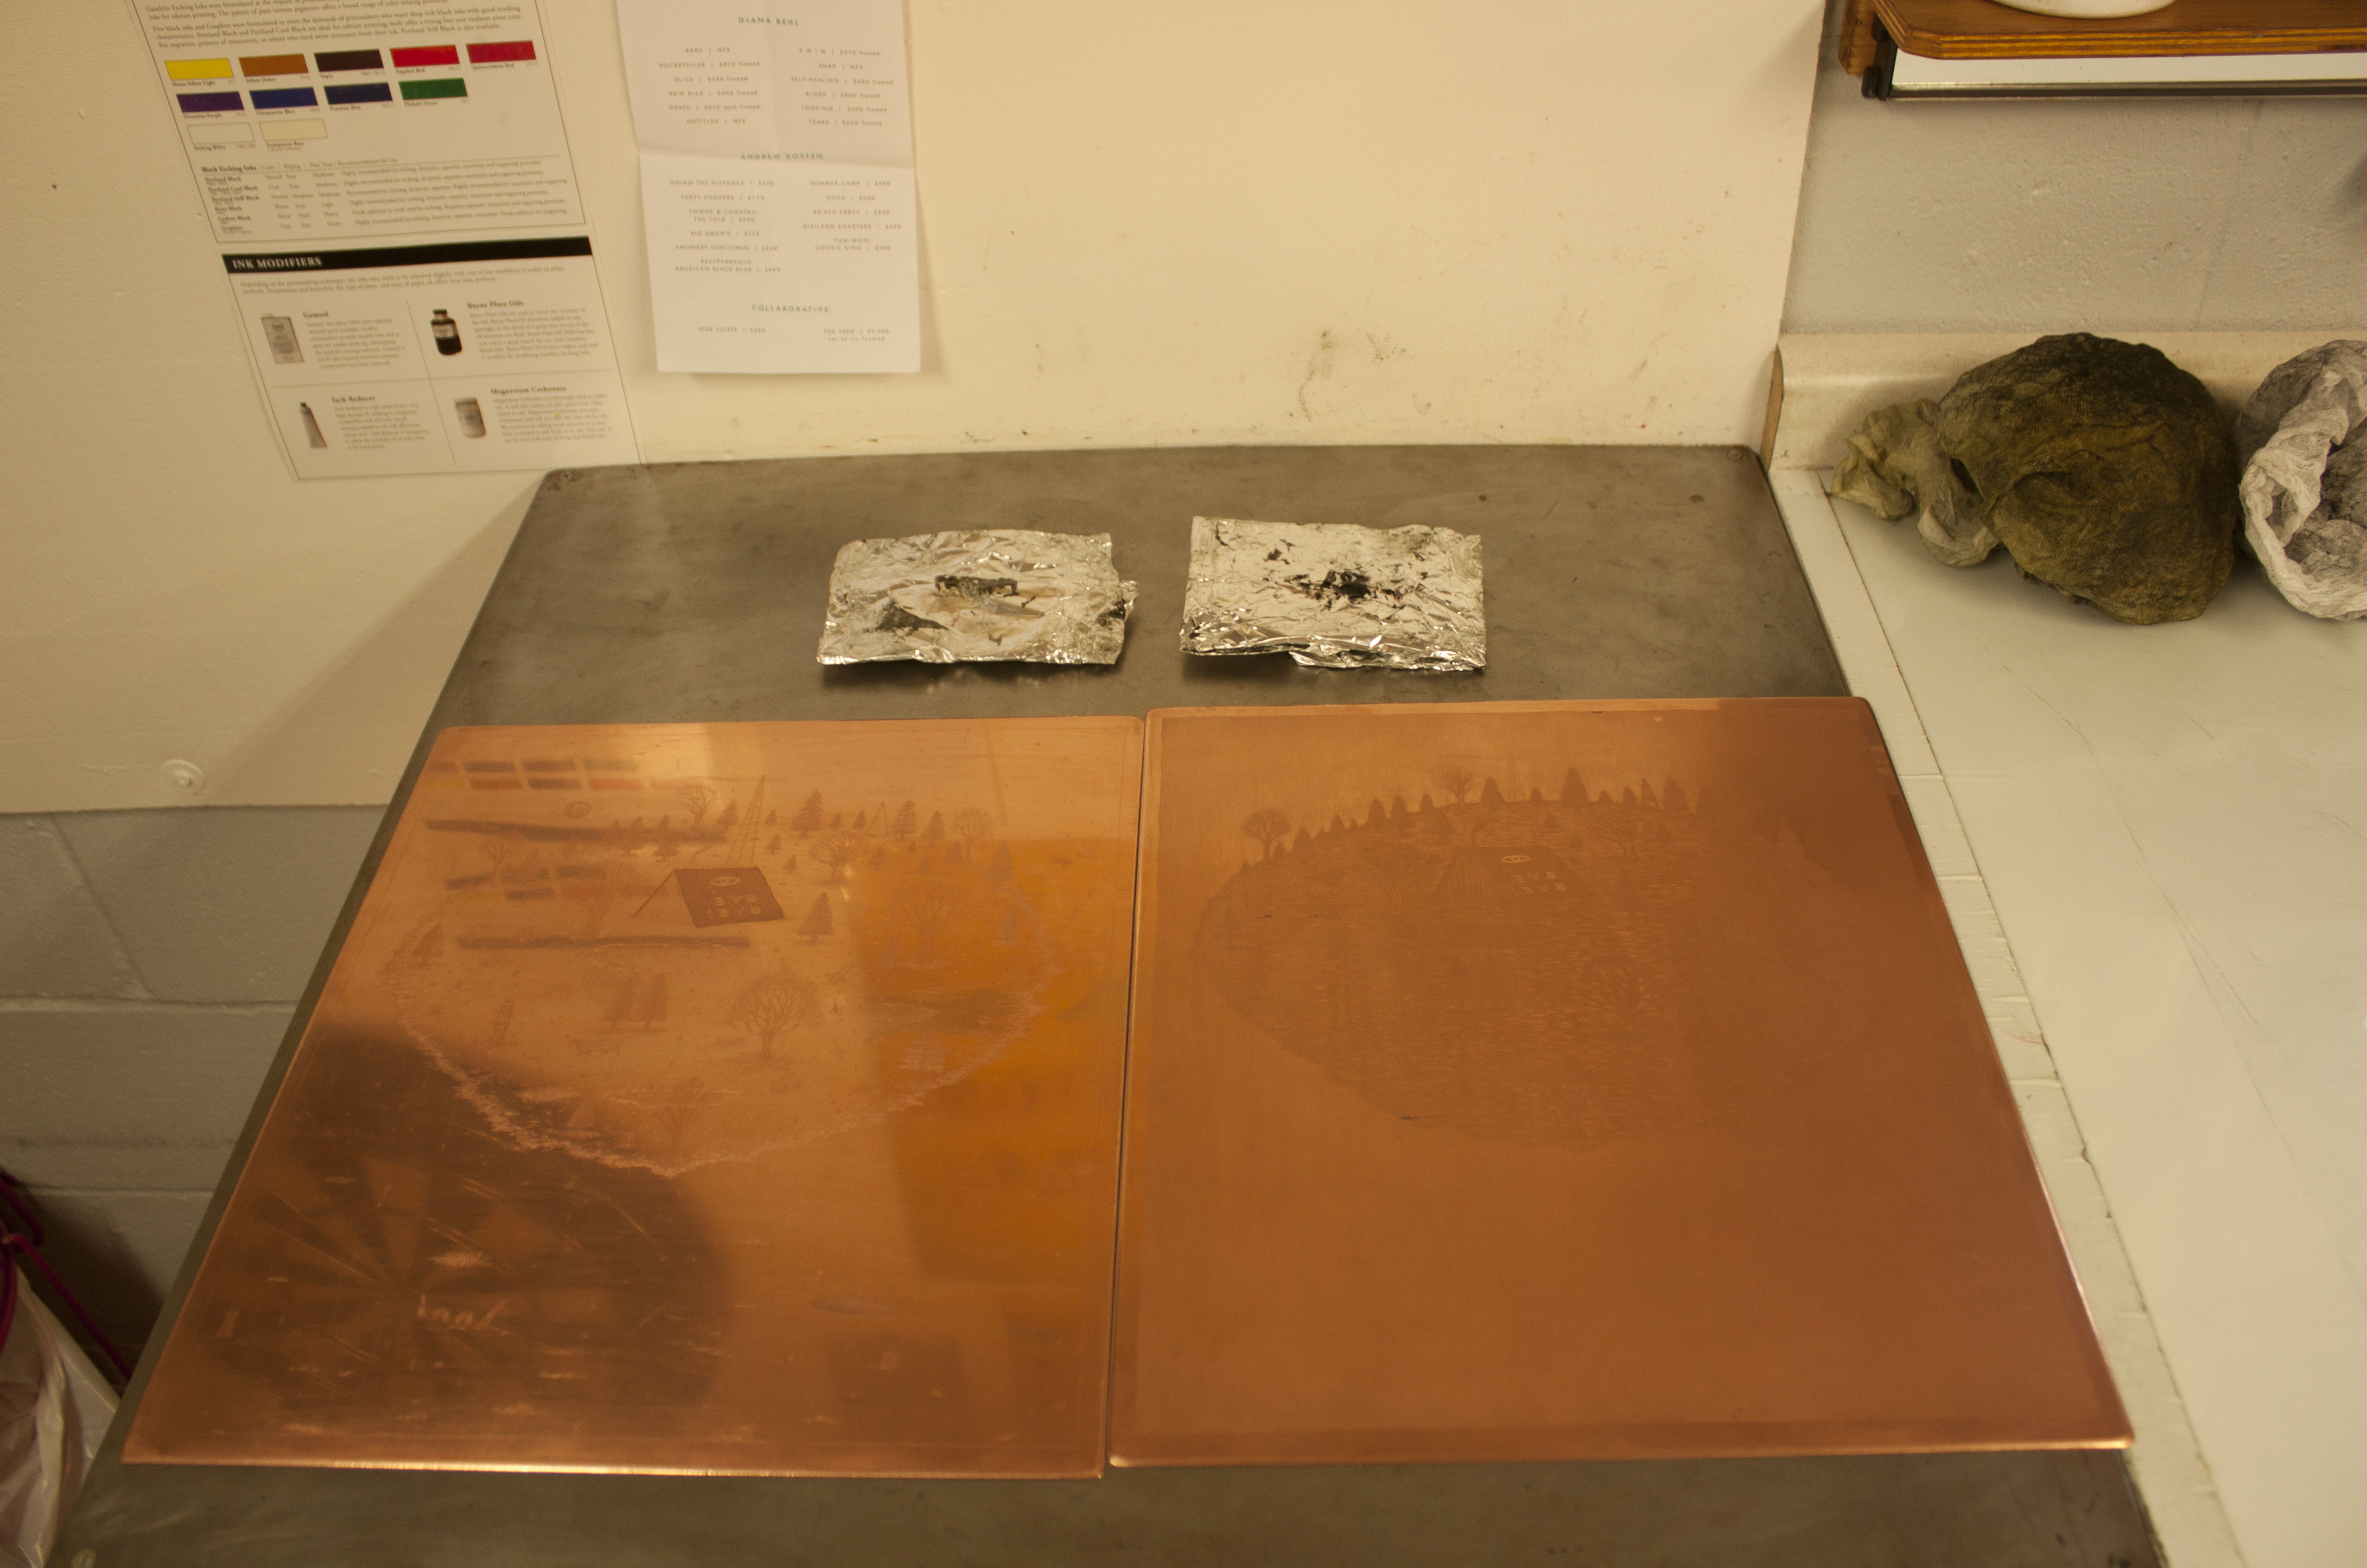 Copper plates used for printing.